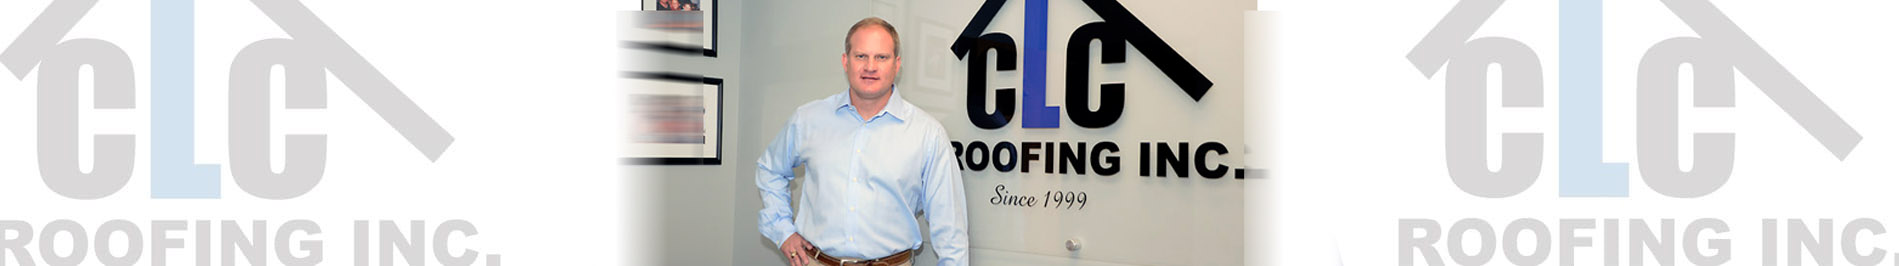 Chad Cross owner of CLC Roofing Inc